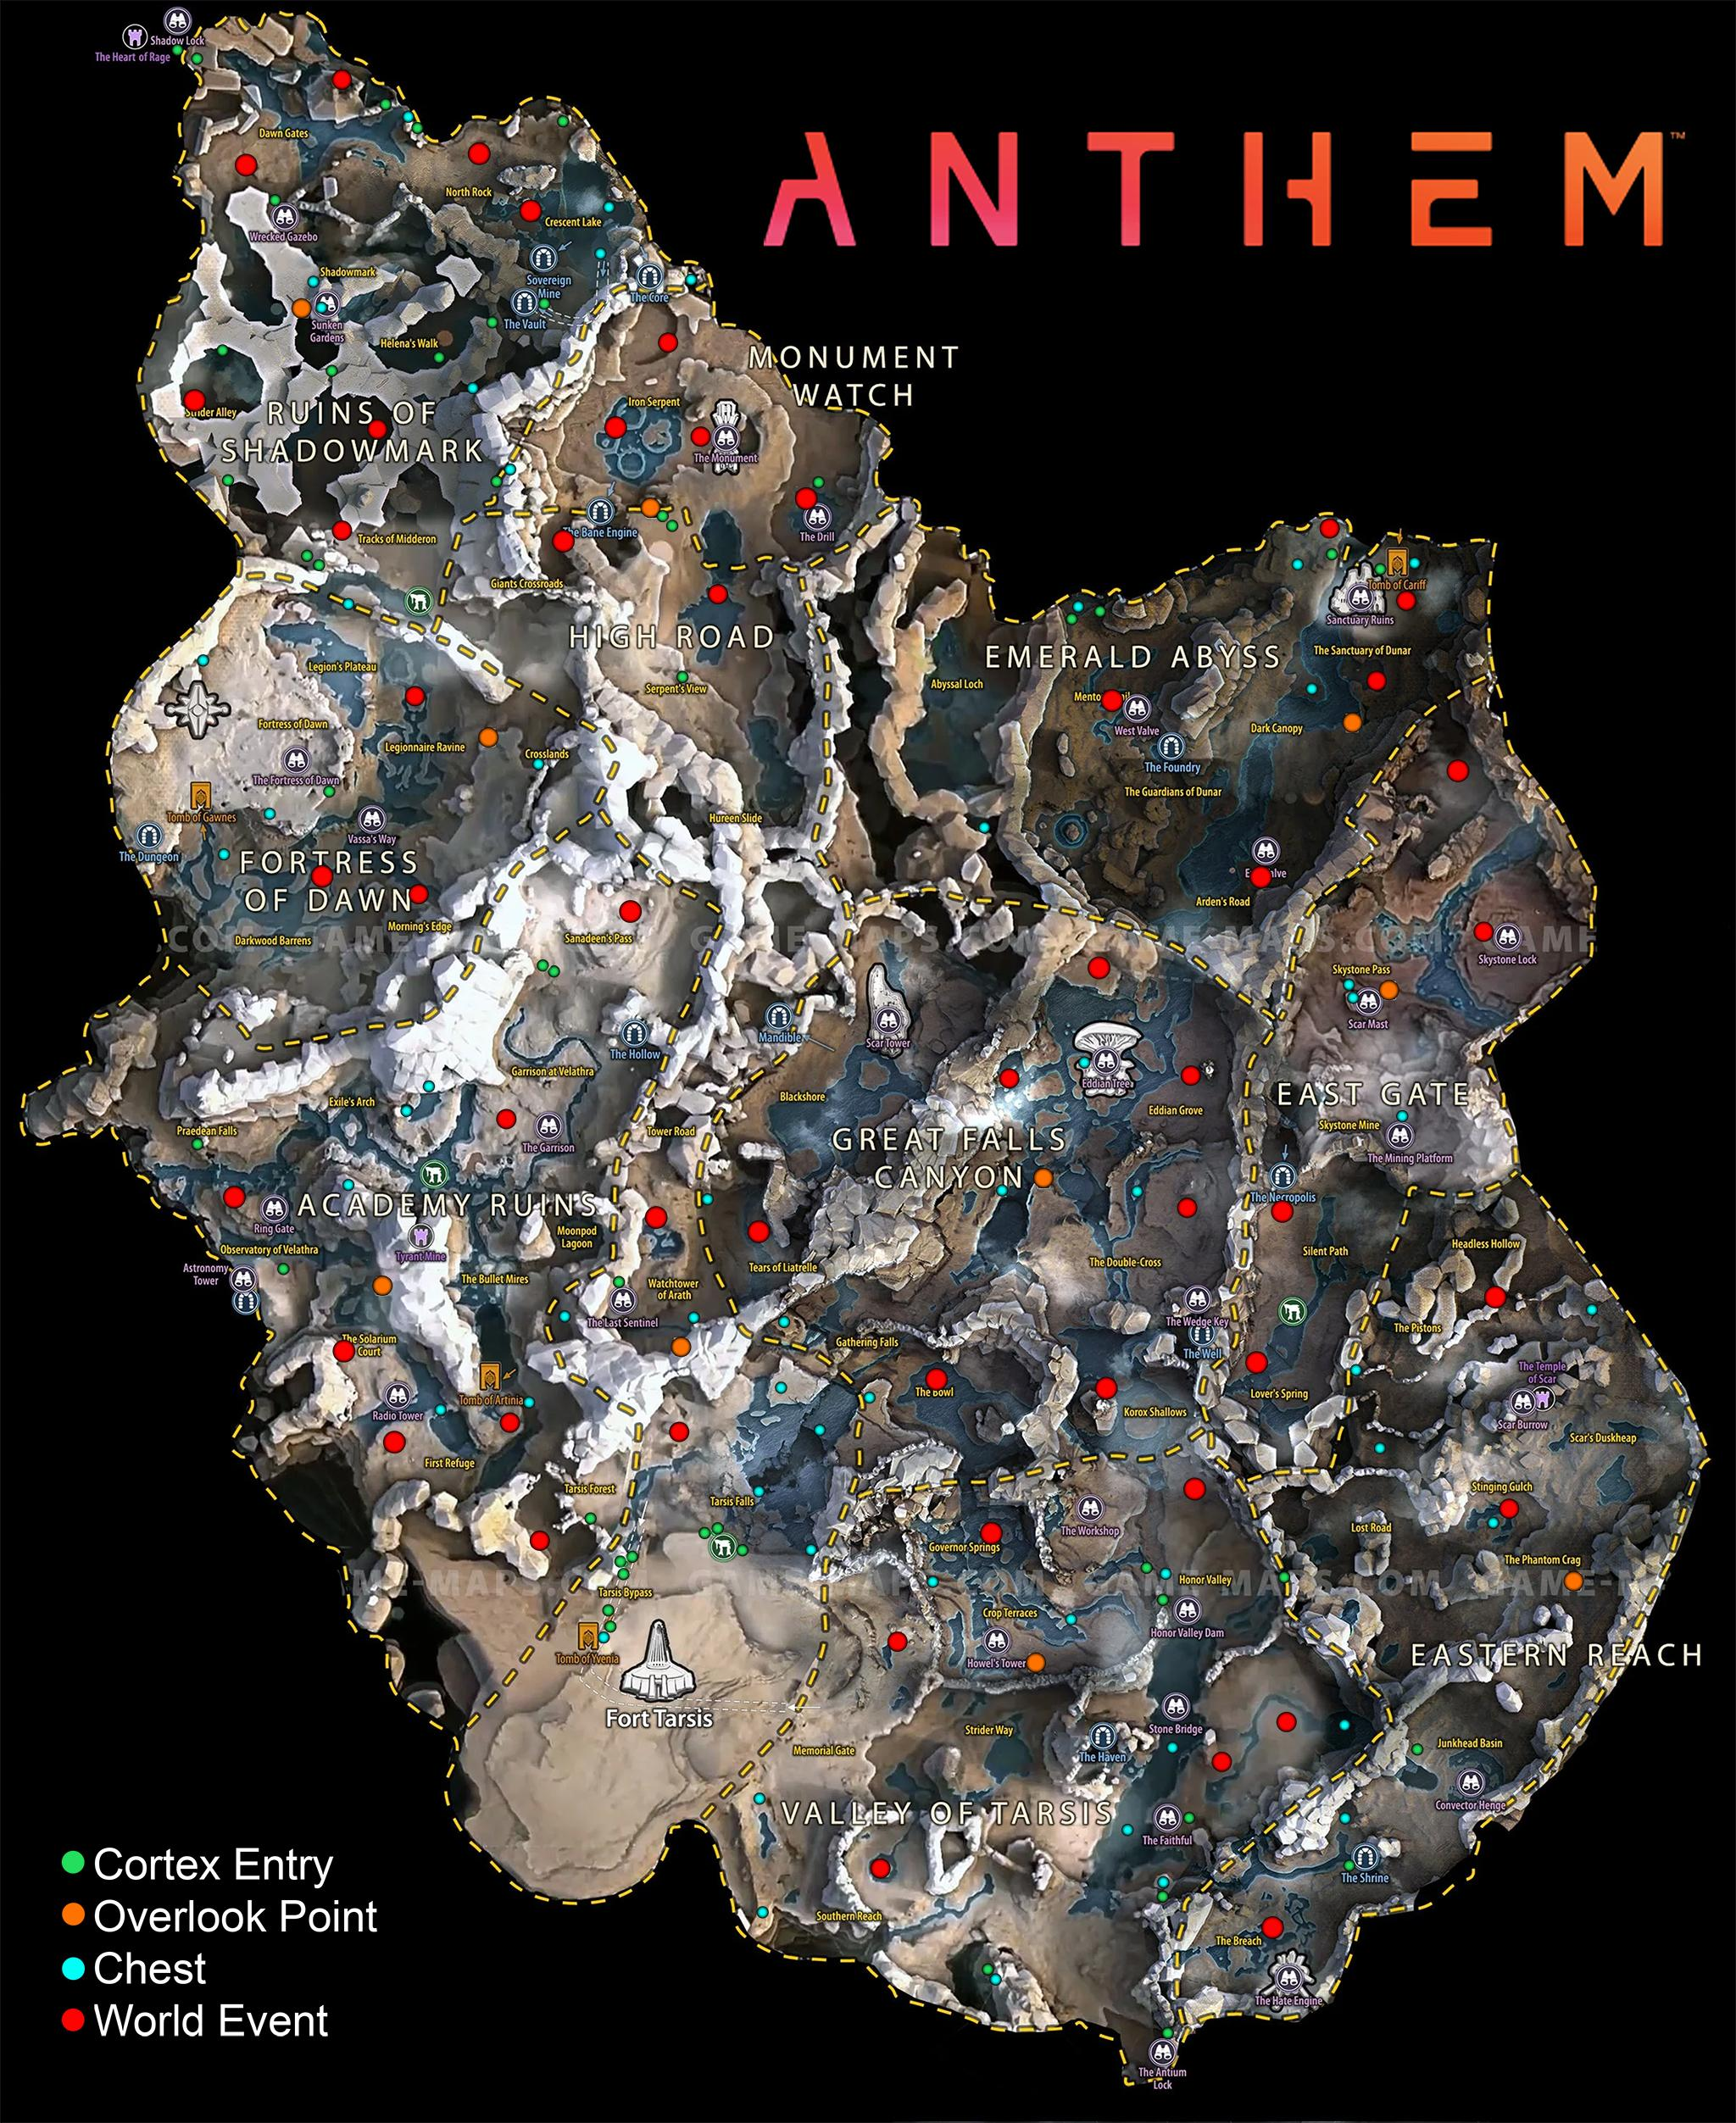 Anthem players are creating maps of world events, Titan